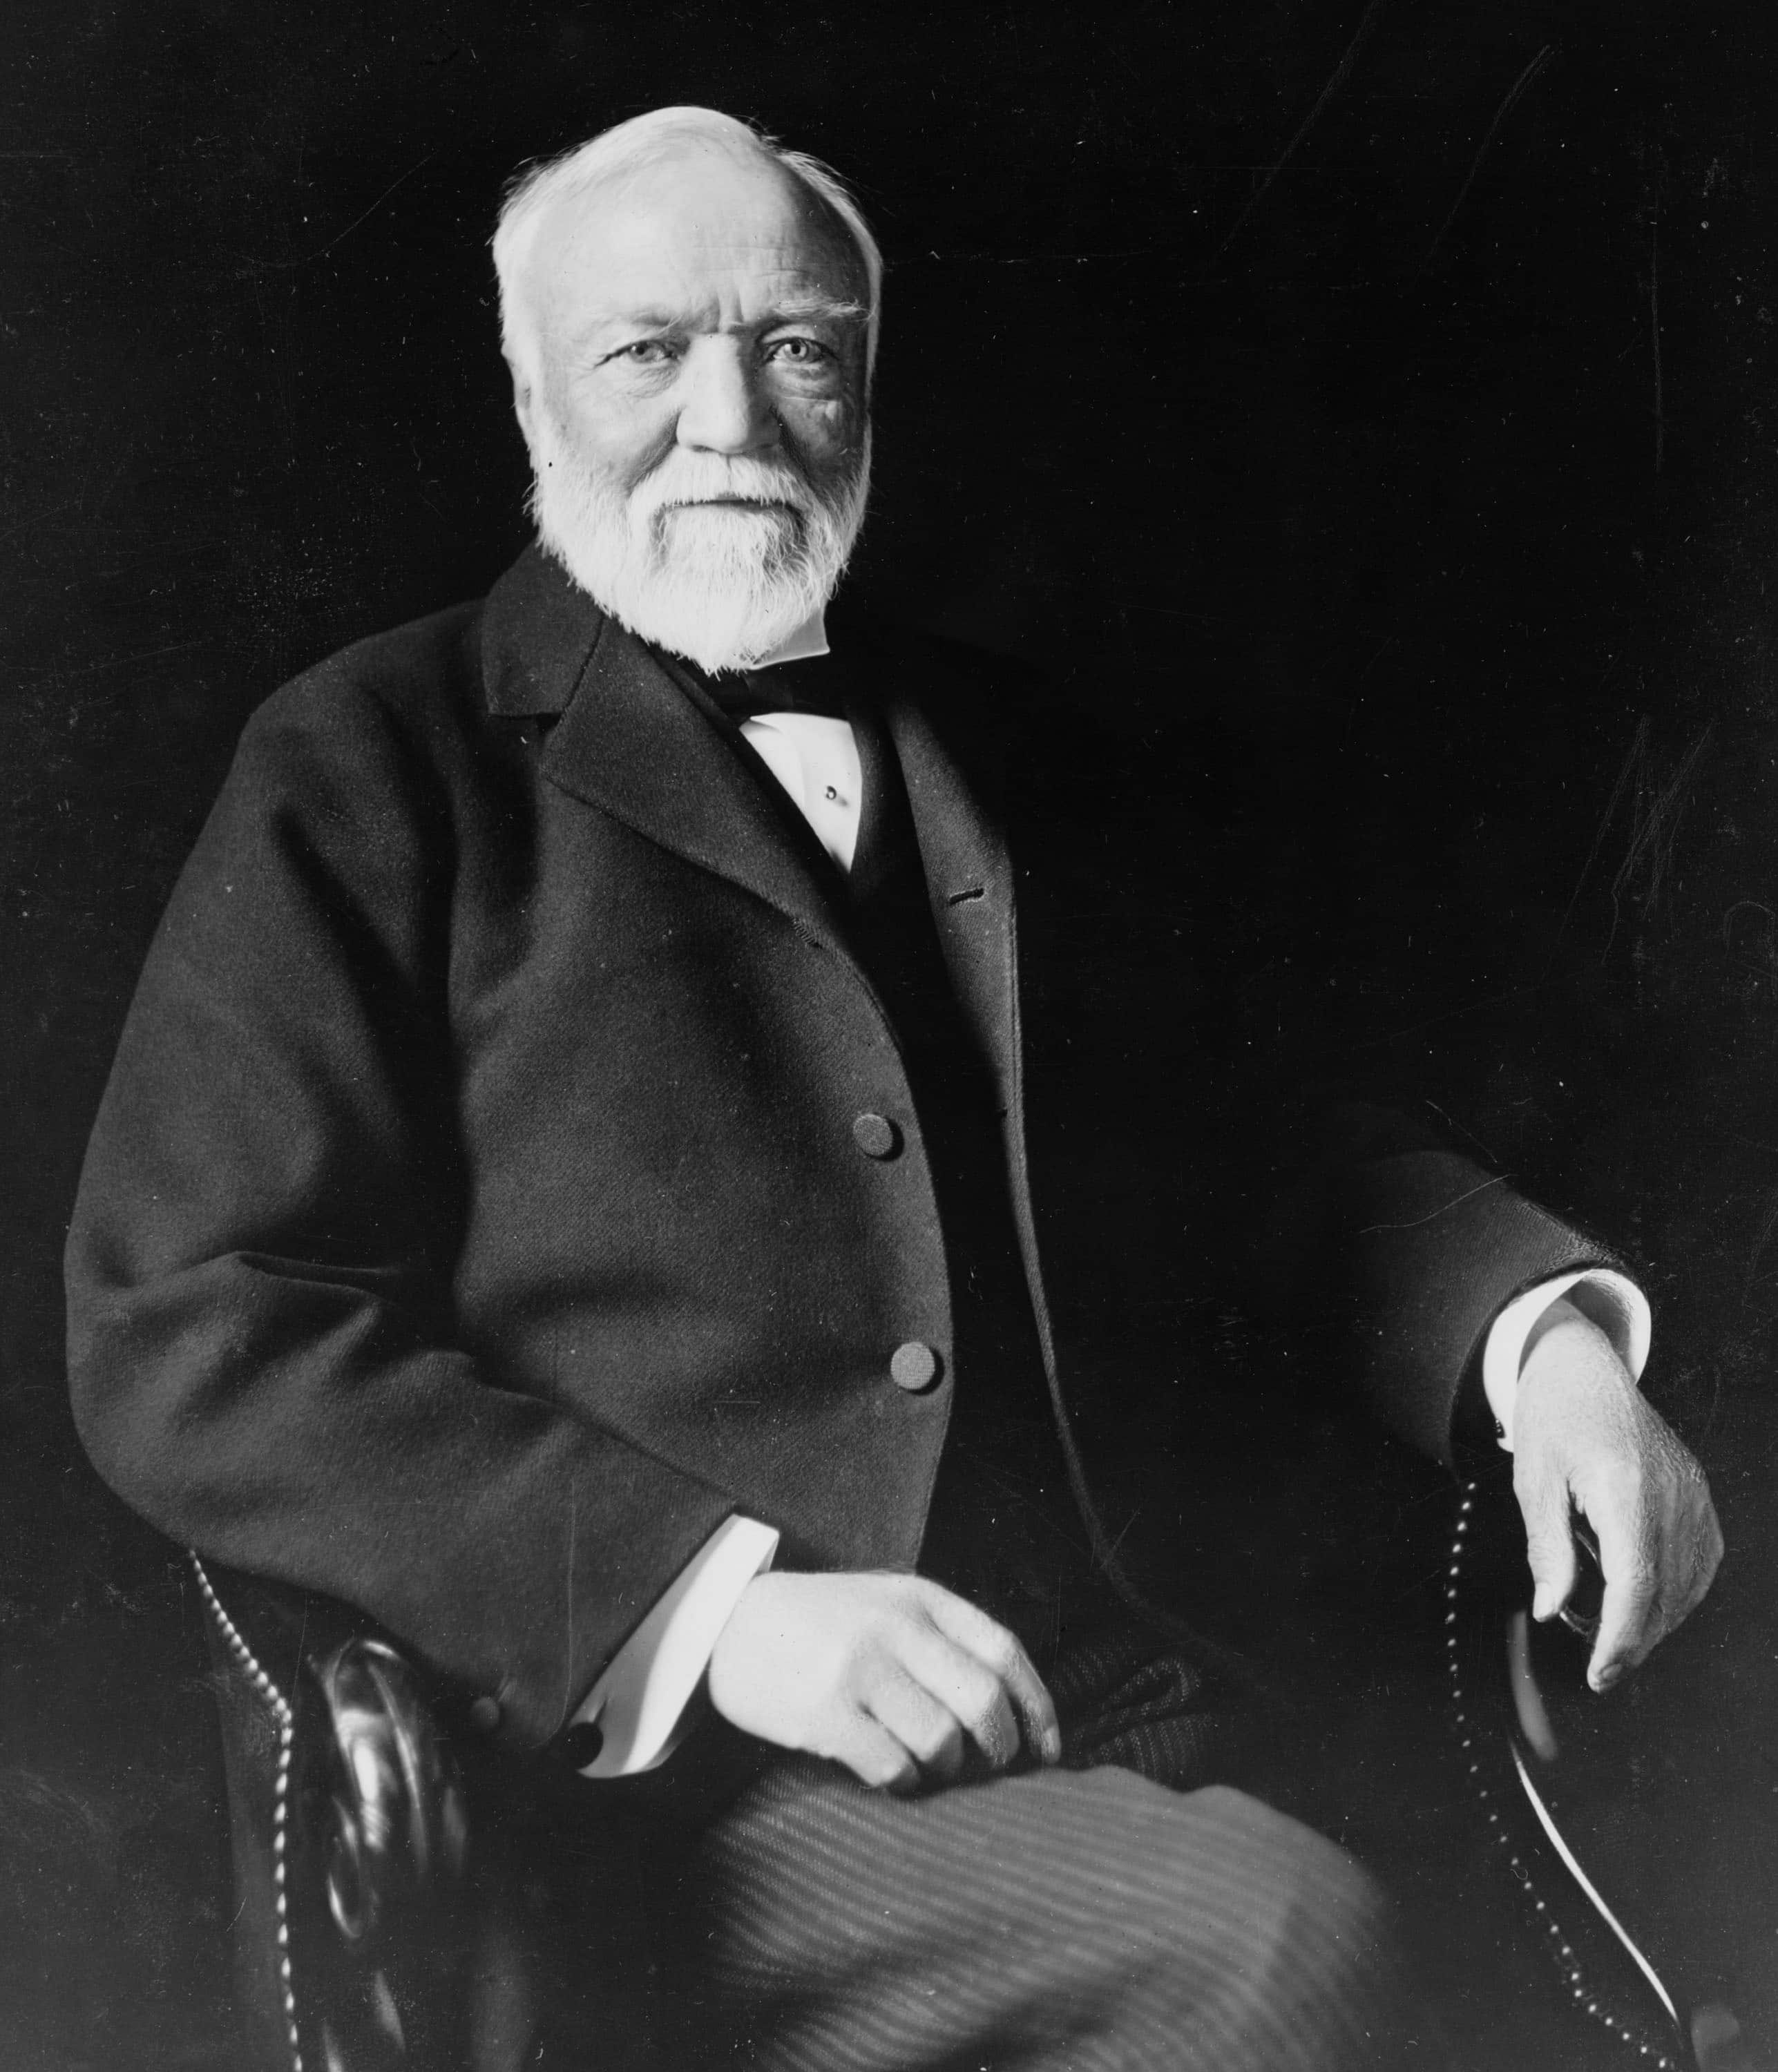 andrew_carnegie_three-quarter_length_portrait_seated_facing_slightly_left_1913 25 of the Greatest Self-Made Men in American History